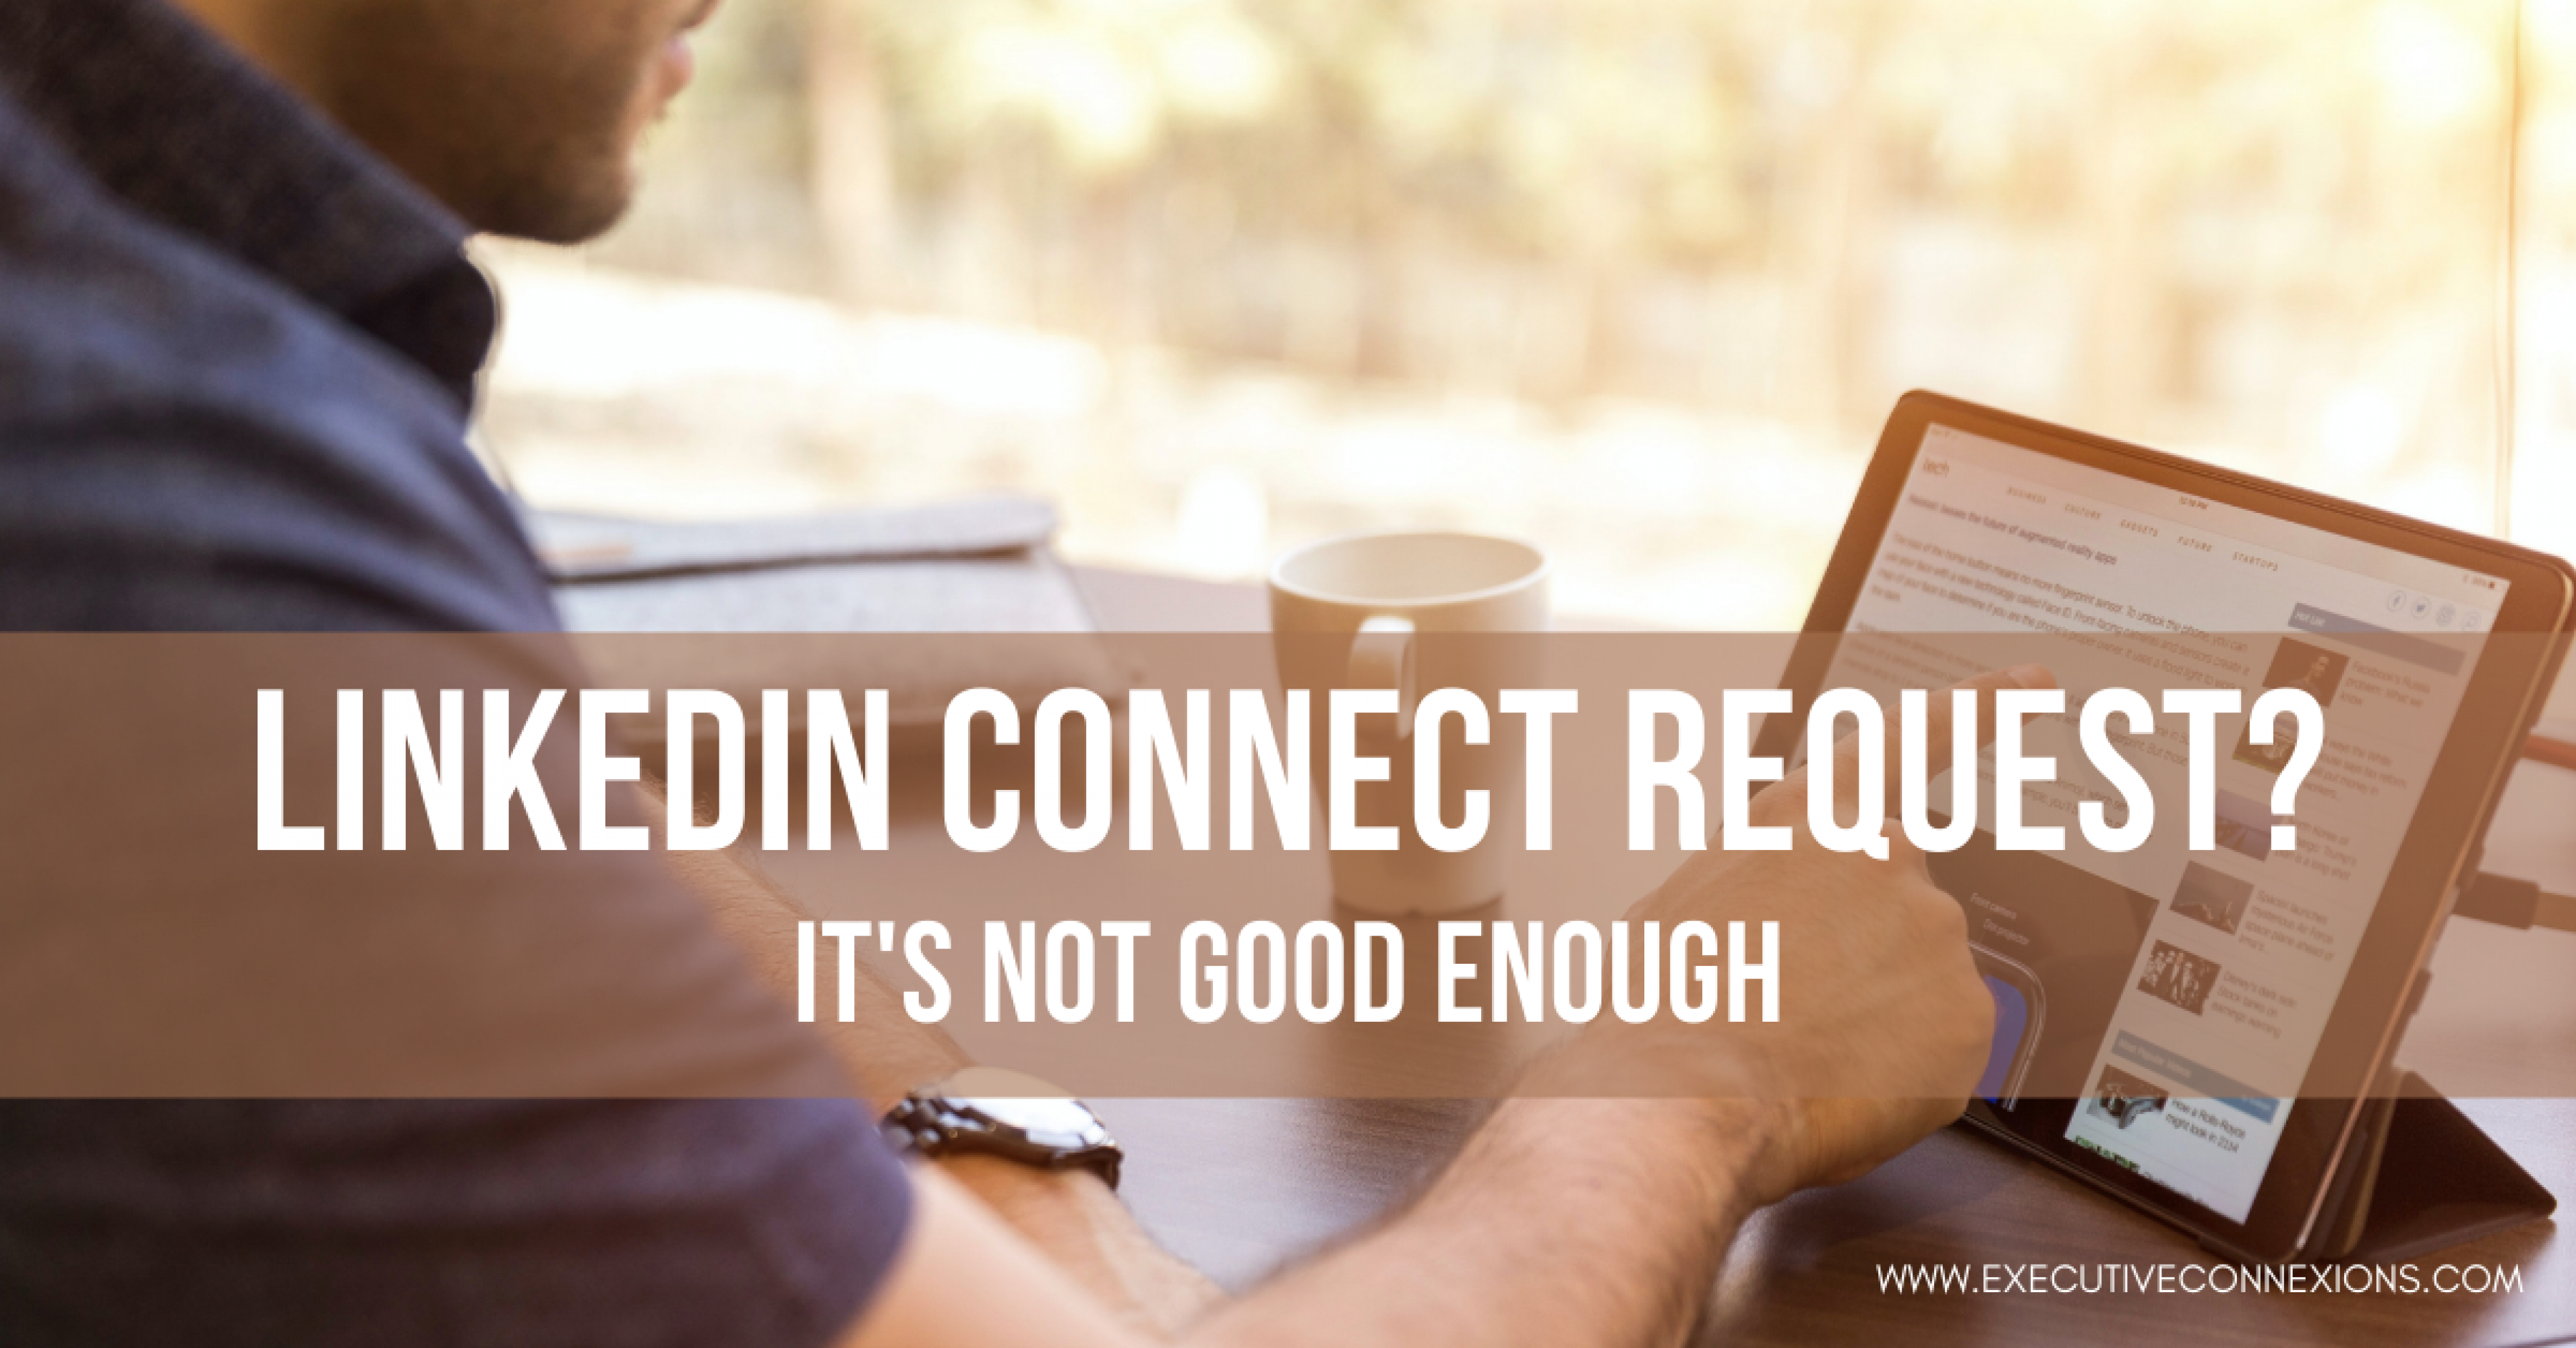 LINKEDIN CONNECT REQUEST? It's not good enough